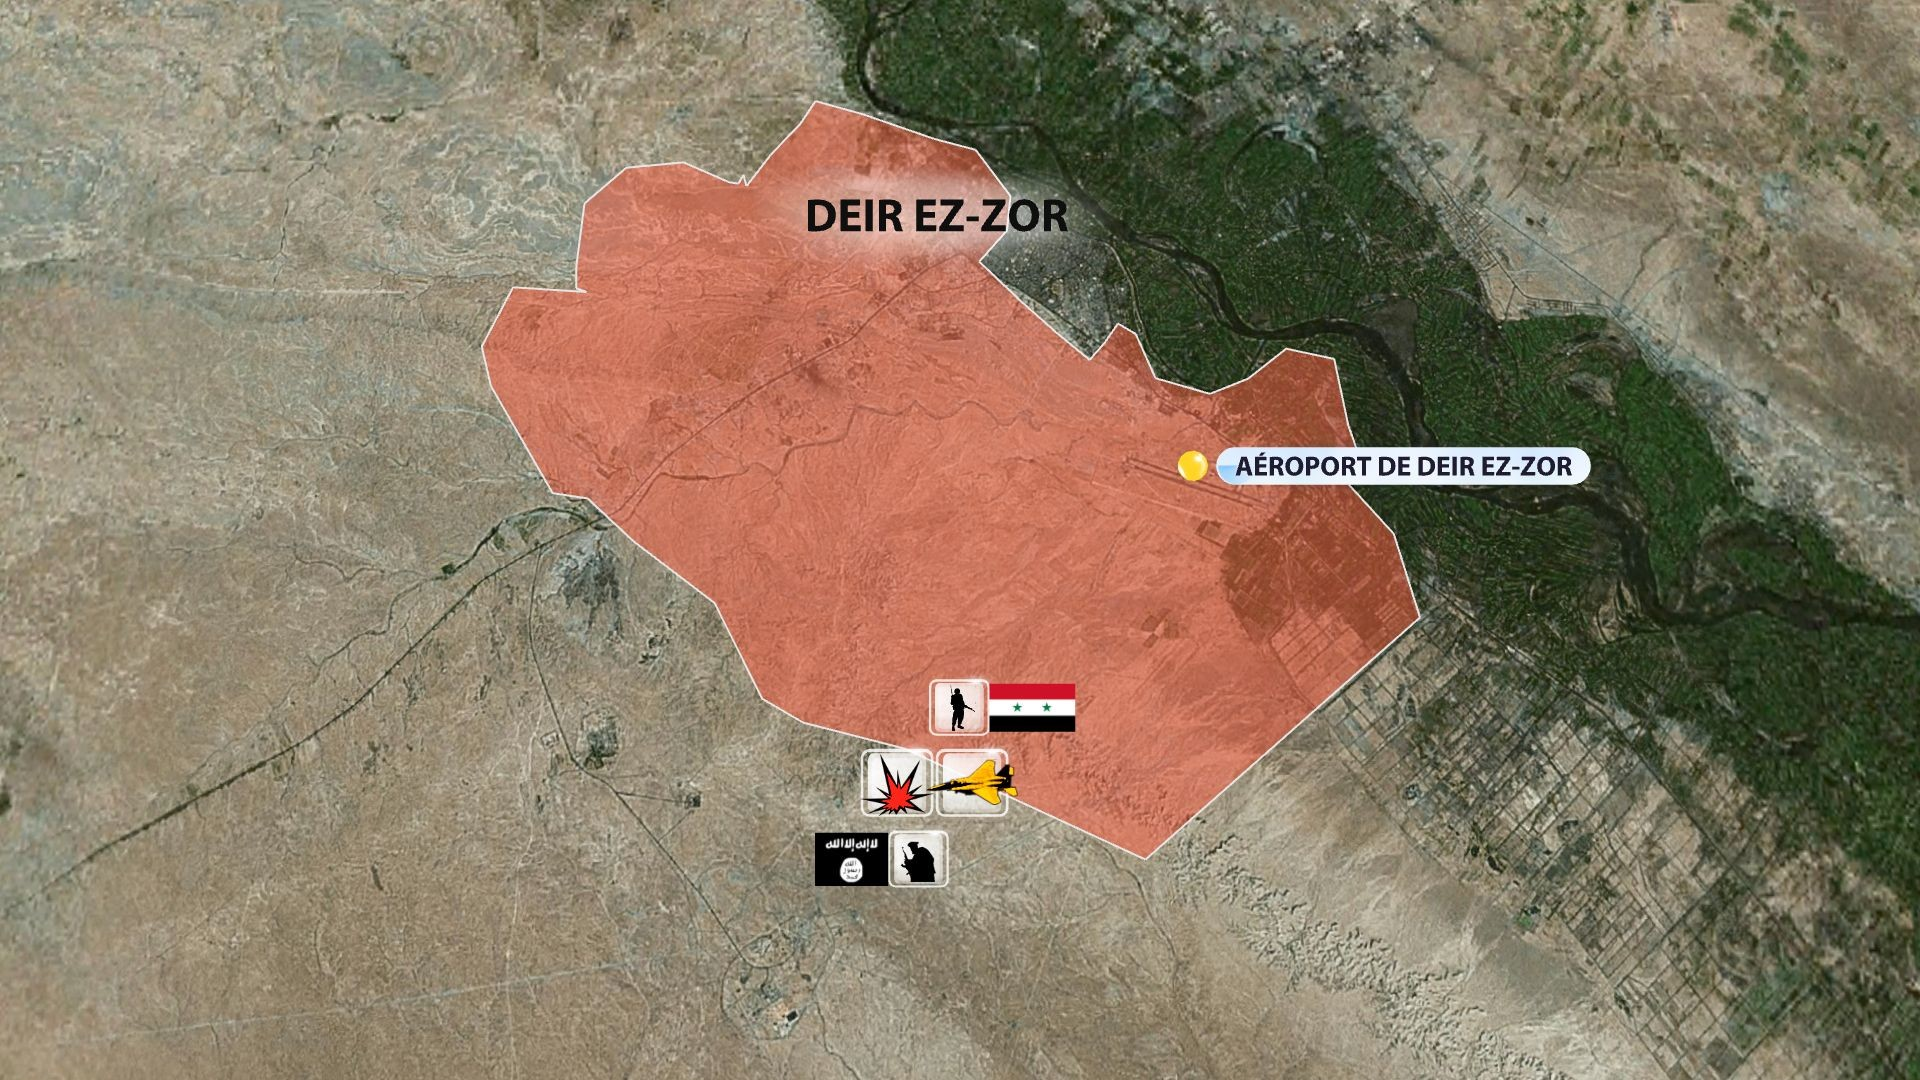 Syrie : Daesh isole la base aérienne de Deir ez-Zor et menace 120 000 civils